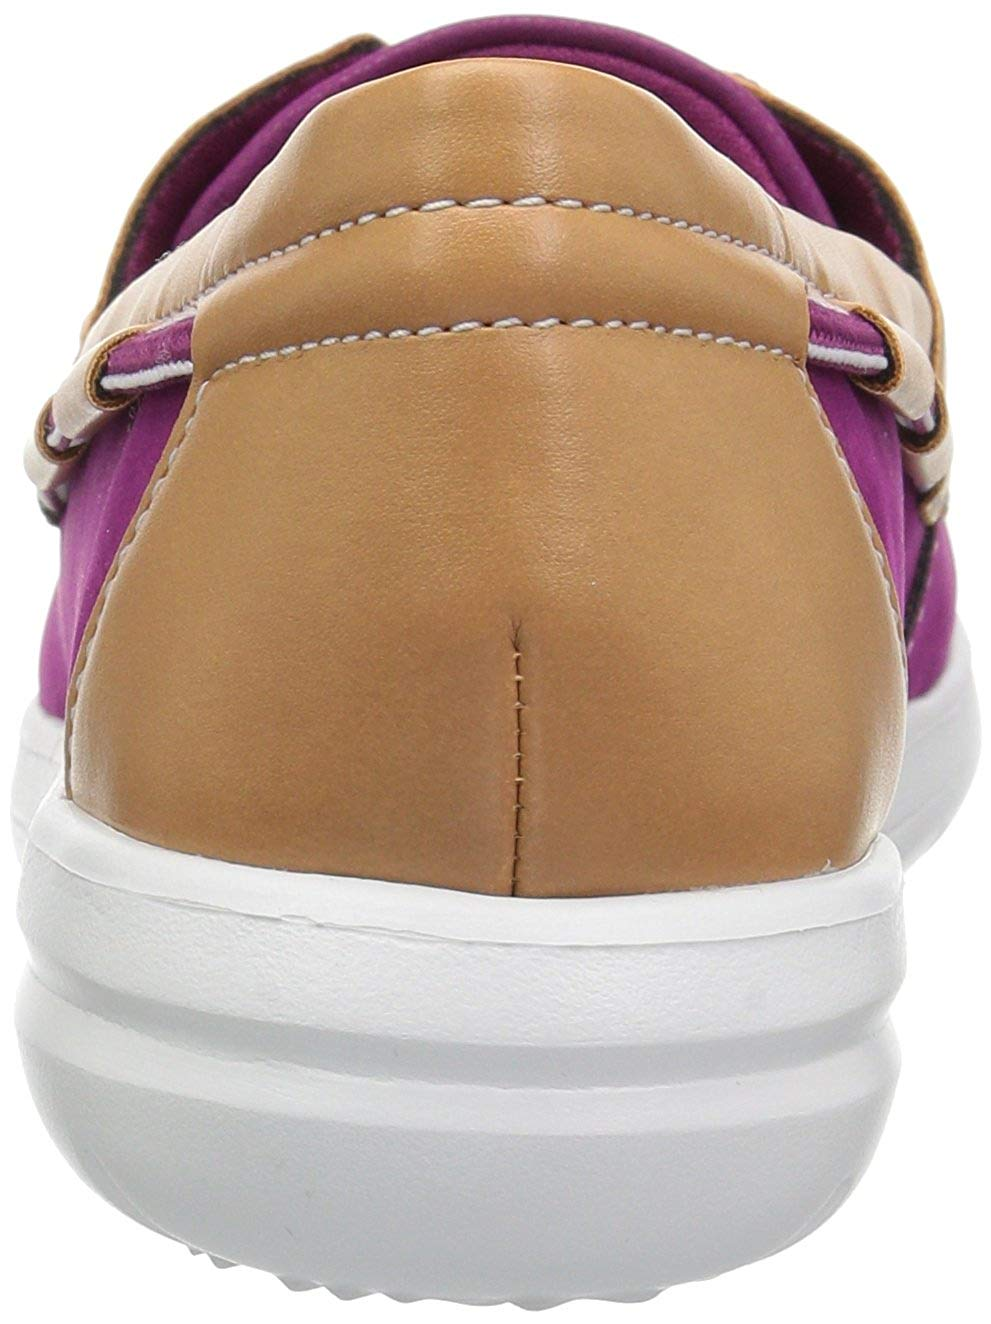 0 Jocolin Women's Boat Shoe 8 6 Multicolor Clarks Uk Size Vista Us 68q5ndw